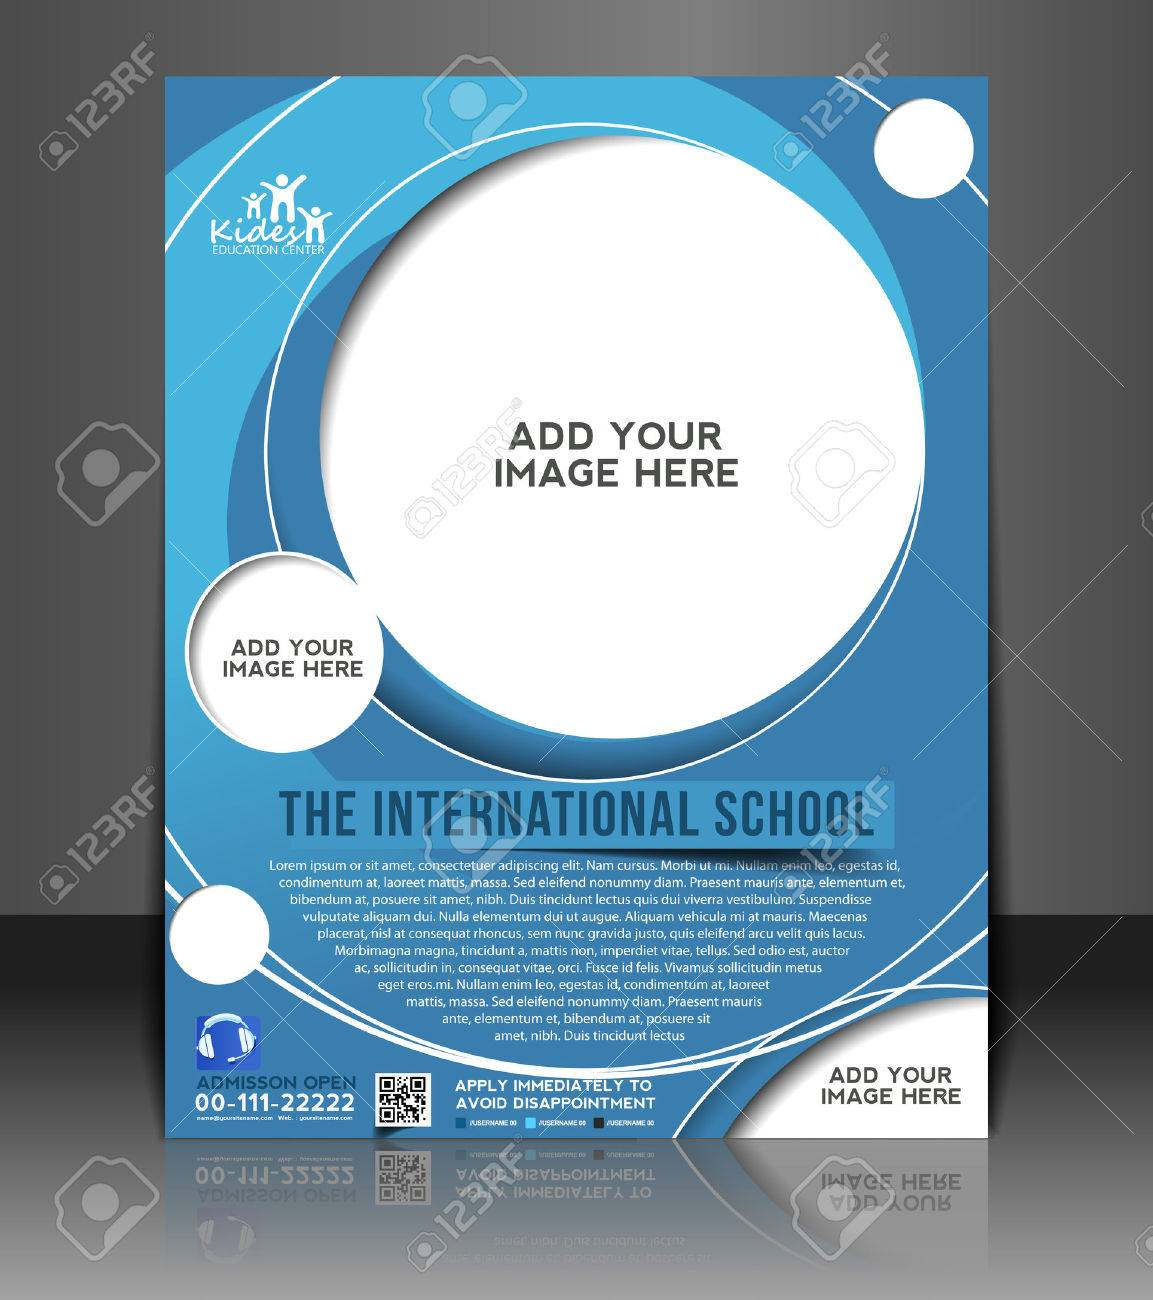 Poster design free template - Poster Design Education Education Ceneter Flyer Poster Template Design Royalty Free